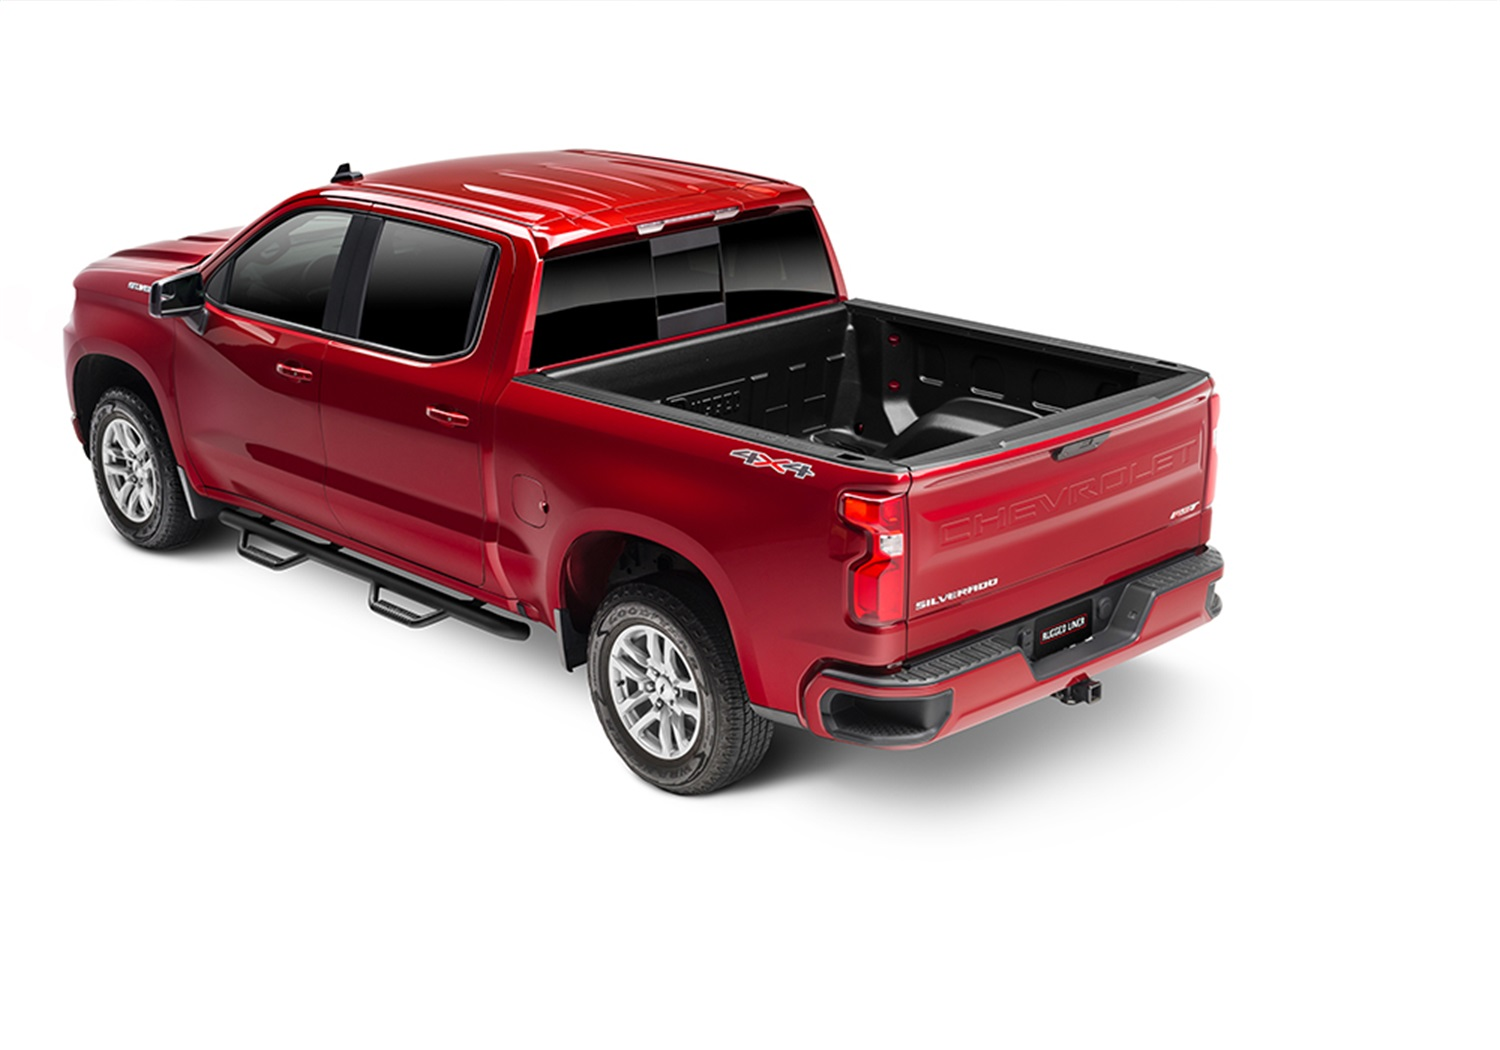 Rugged Liner Under Rail Bed Liner, Incl. Bedliner, Tailgate Cover, w/Tailgate Spoiler, w/RamBox, w/o Cargo Light